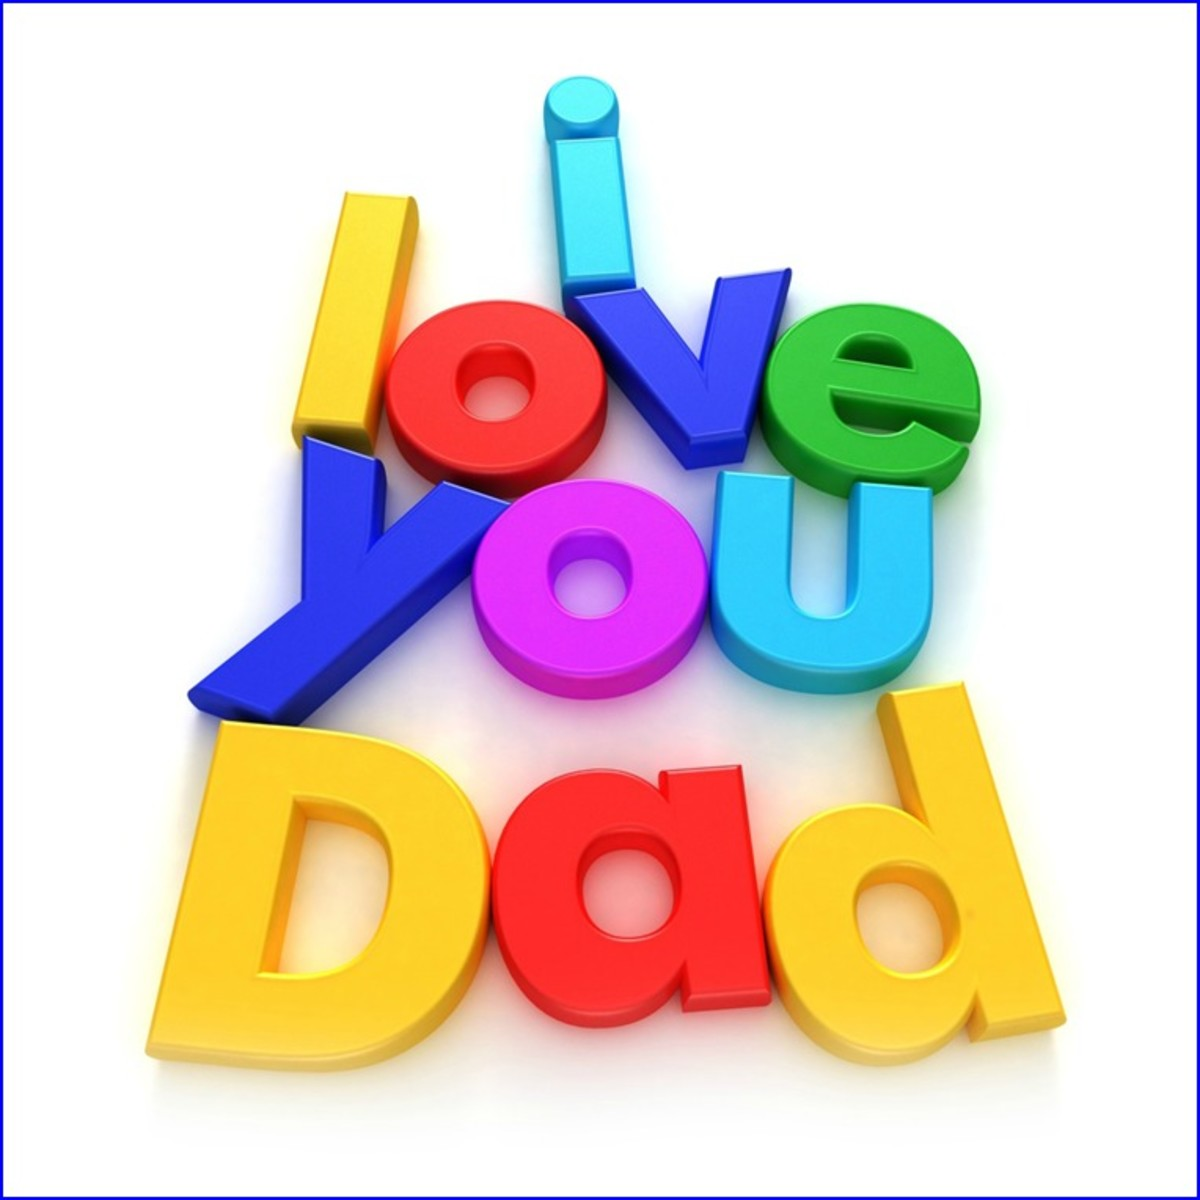 Picture of words: I Love You Dad